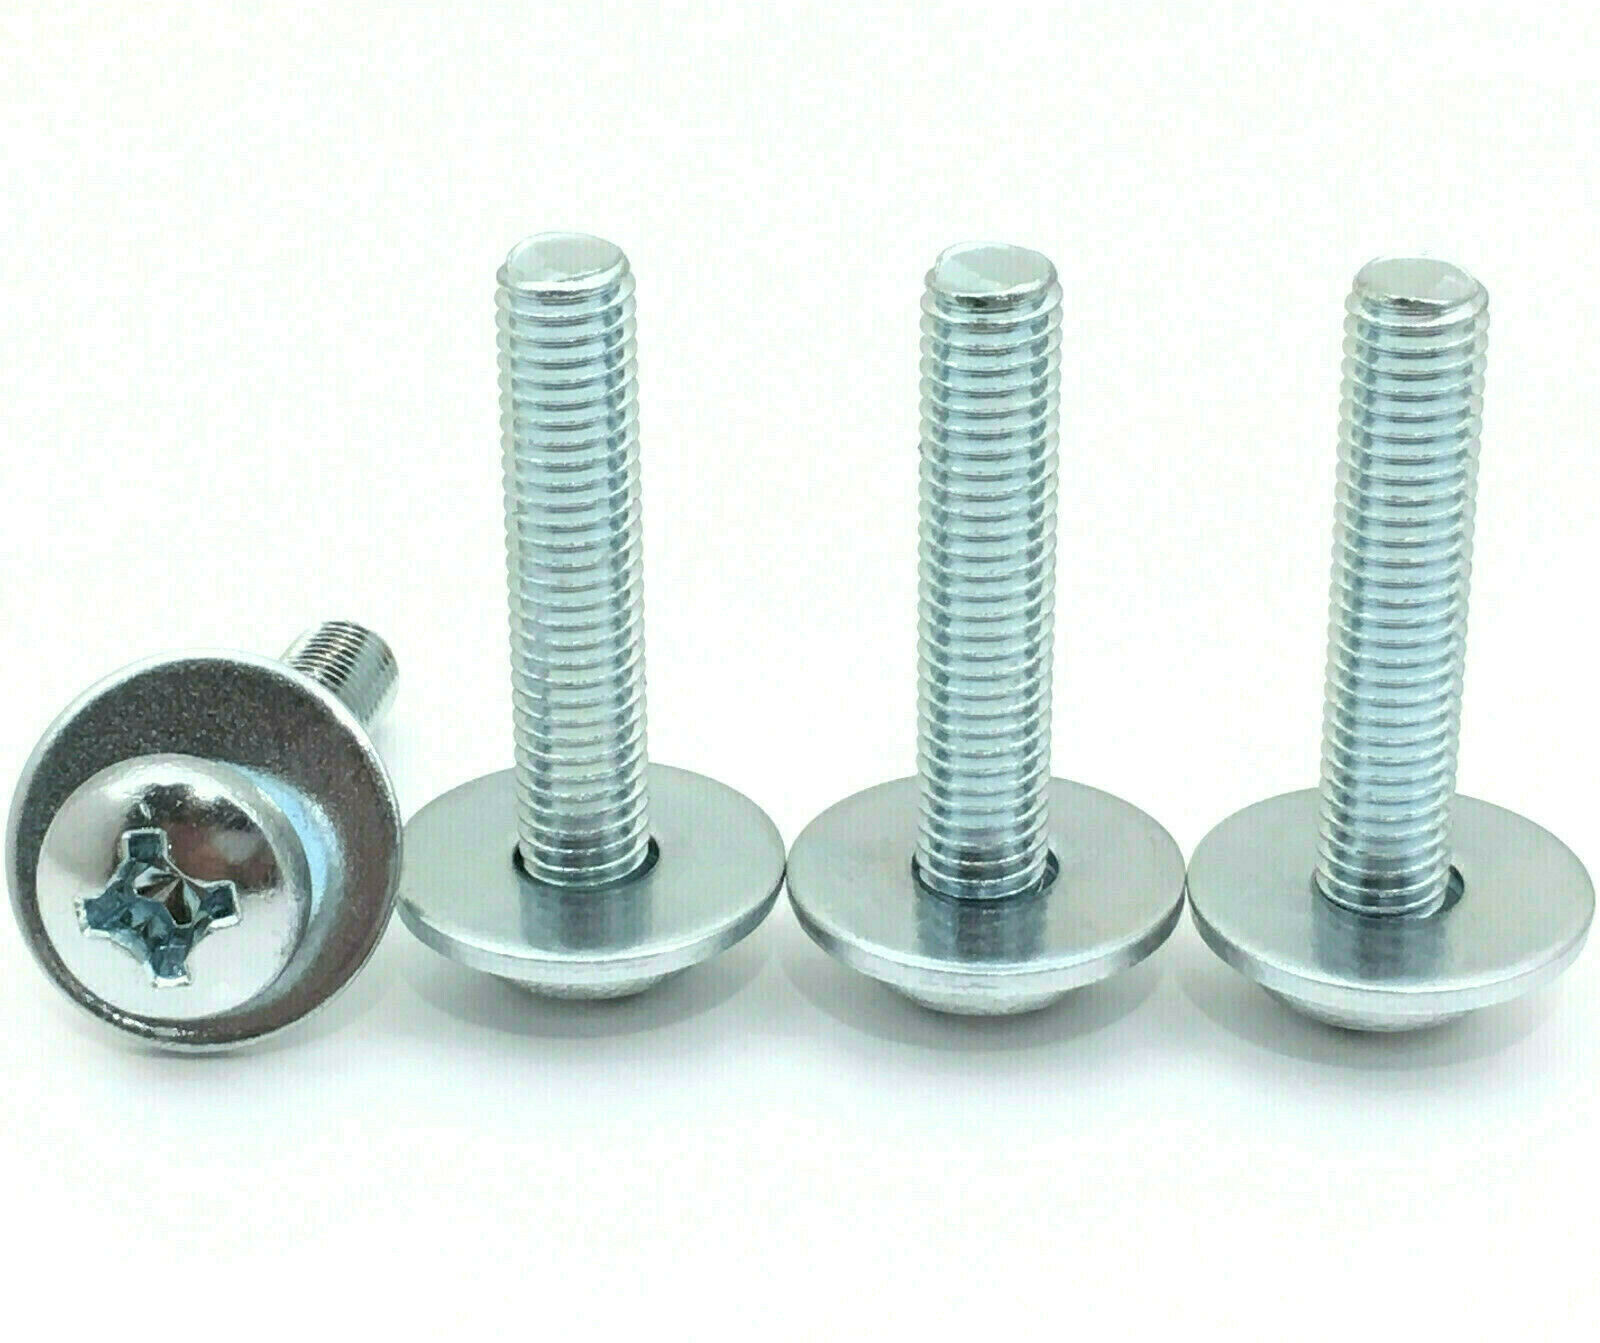 Samsung Wall Mount Mounting Screws for Model QN50Q6DT, QN50Q6DTAF, QN50Q6DTAFXZA - $6.92